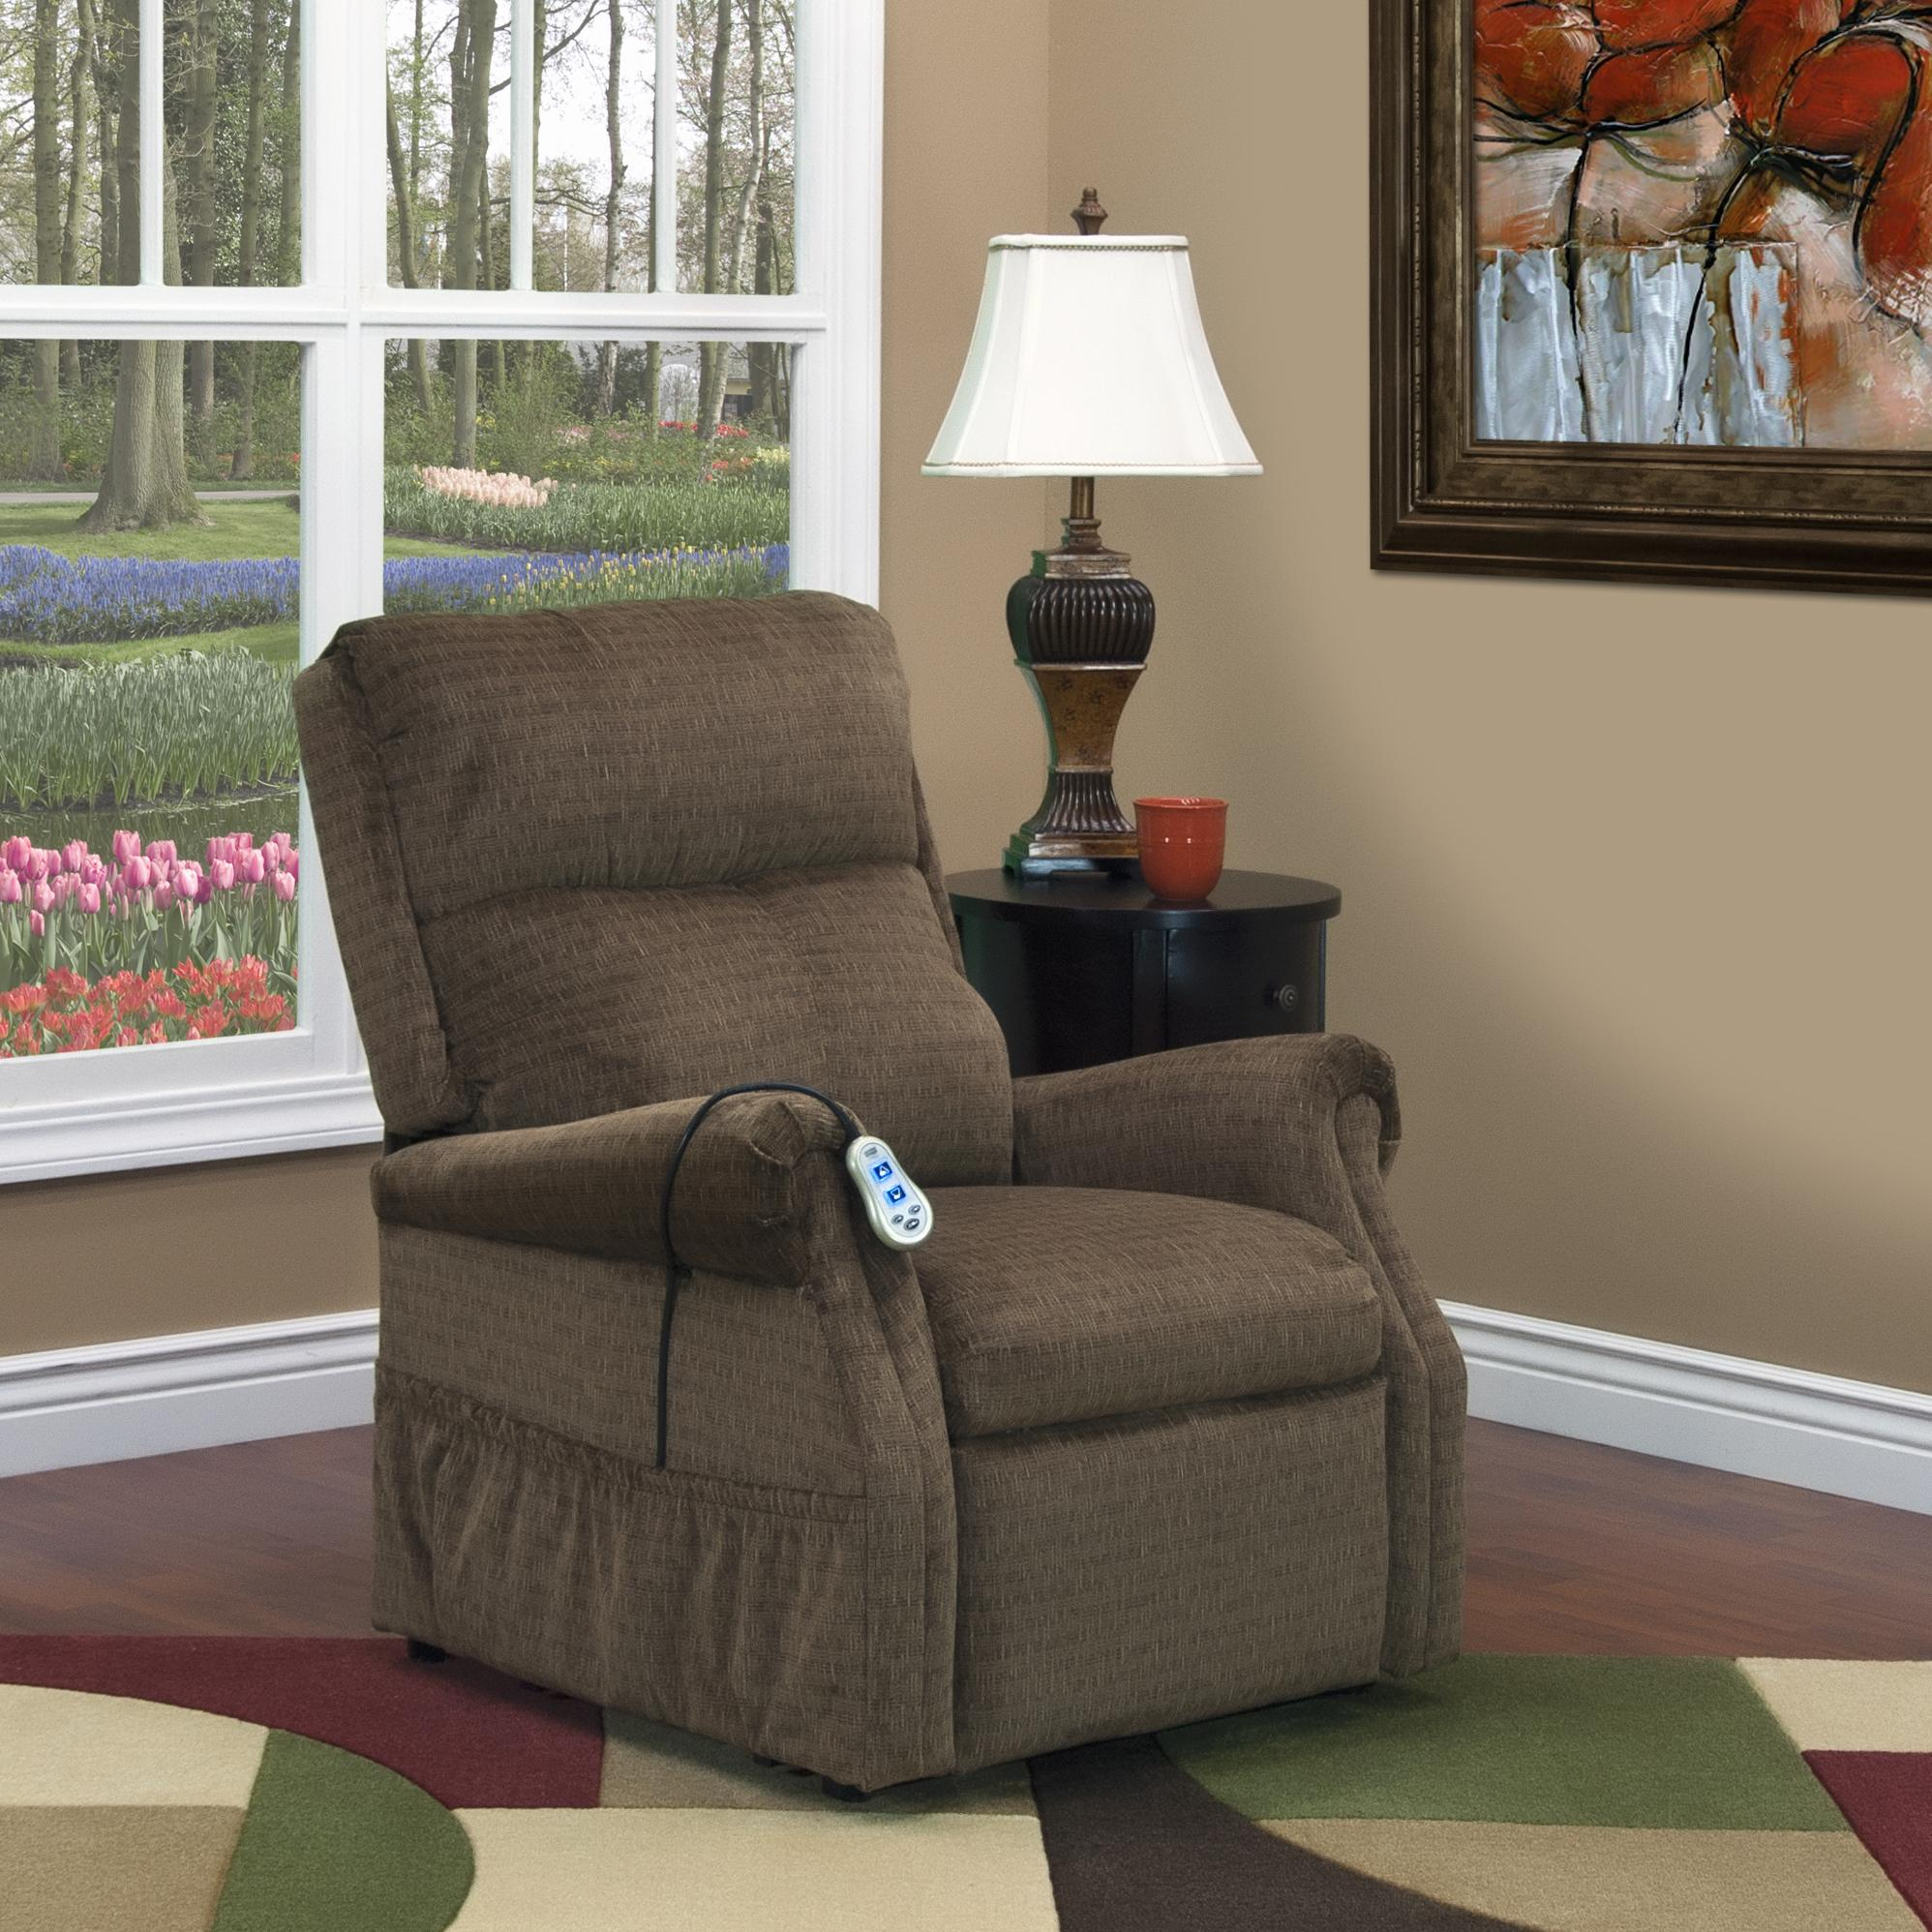 1175 Lift Recliner by Med-Lift & Mobility at Miller Home